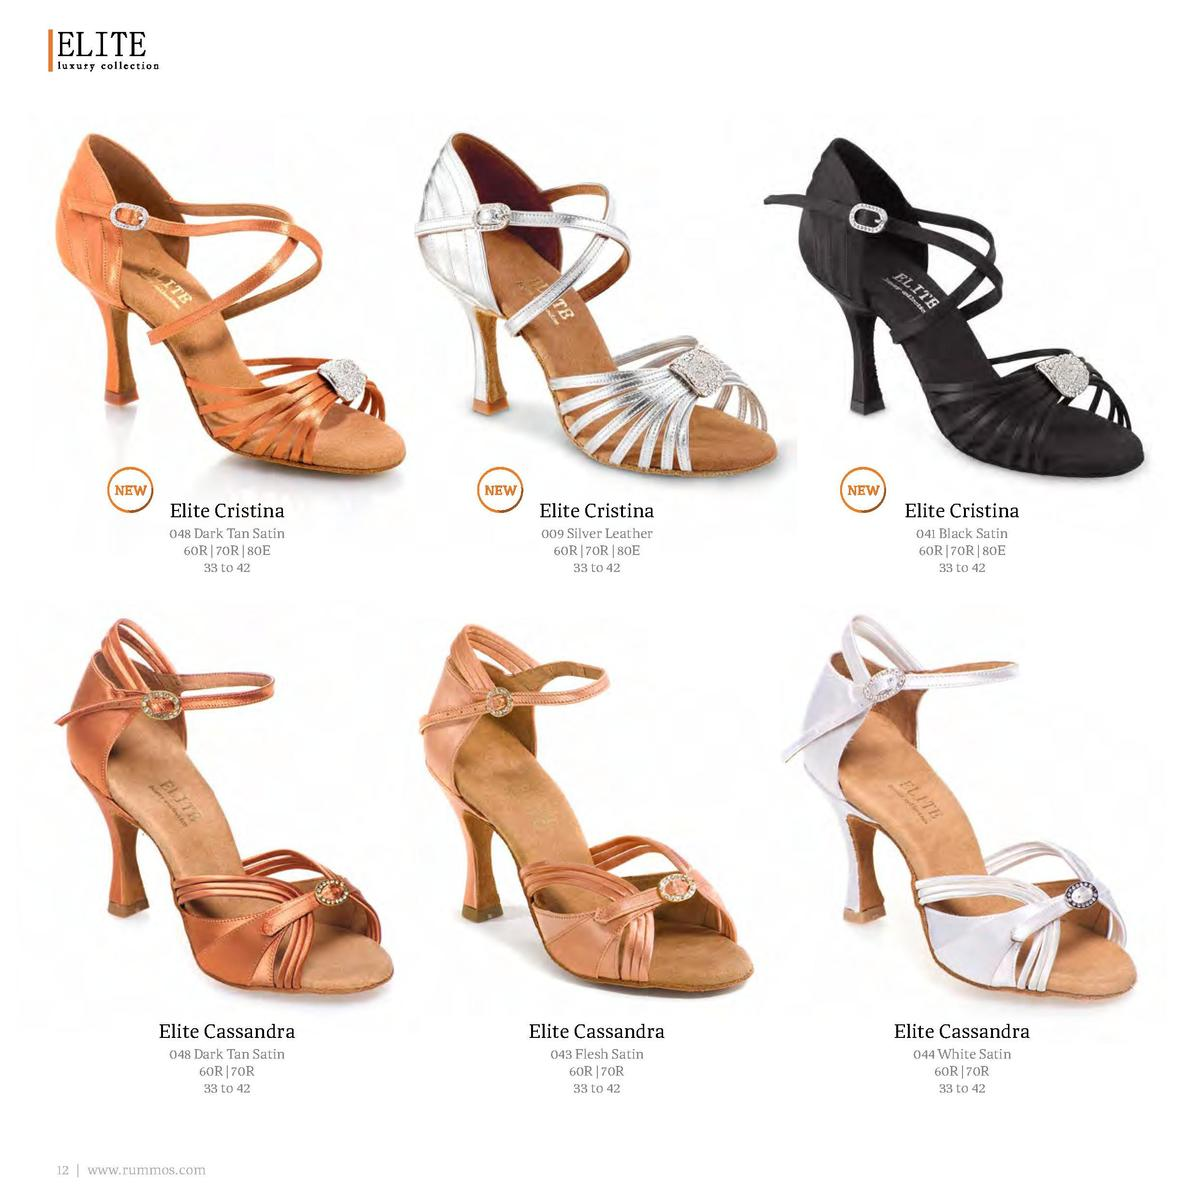 Elite Cristina  Elite Cristina  Elite Cristina  048 Dark Tan Satin 60R   70R   80E 33 to 42  009 Silver Leather 60R   70R ...